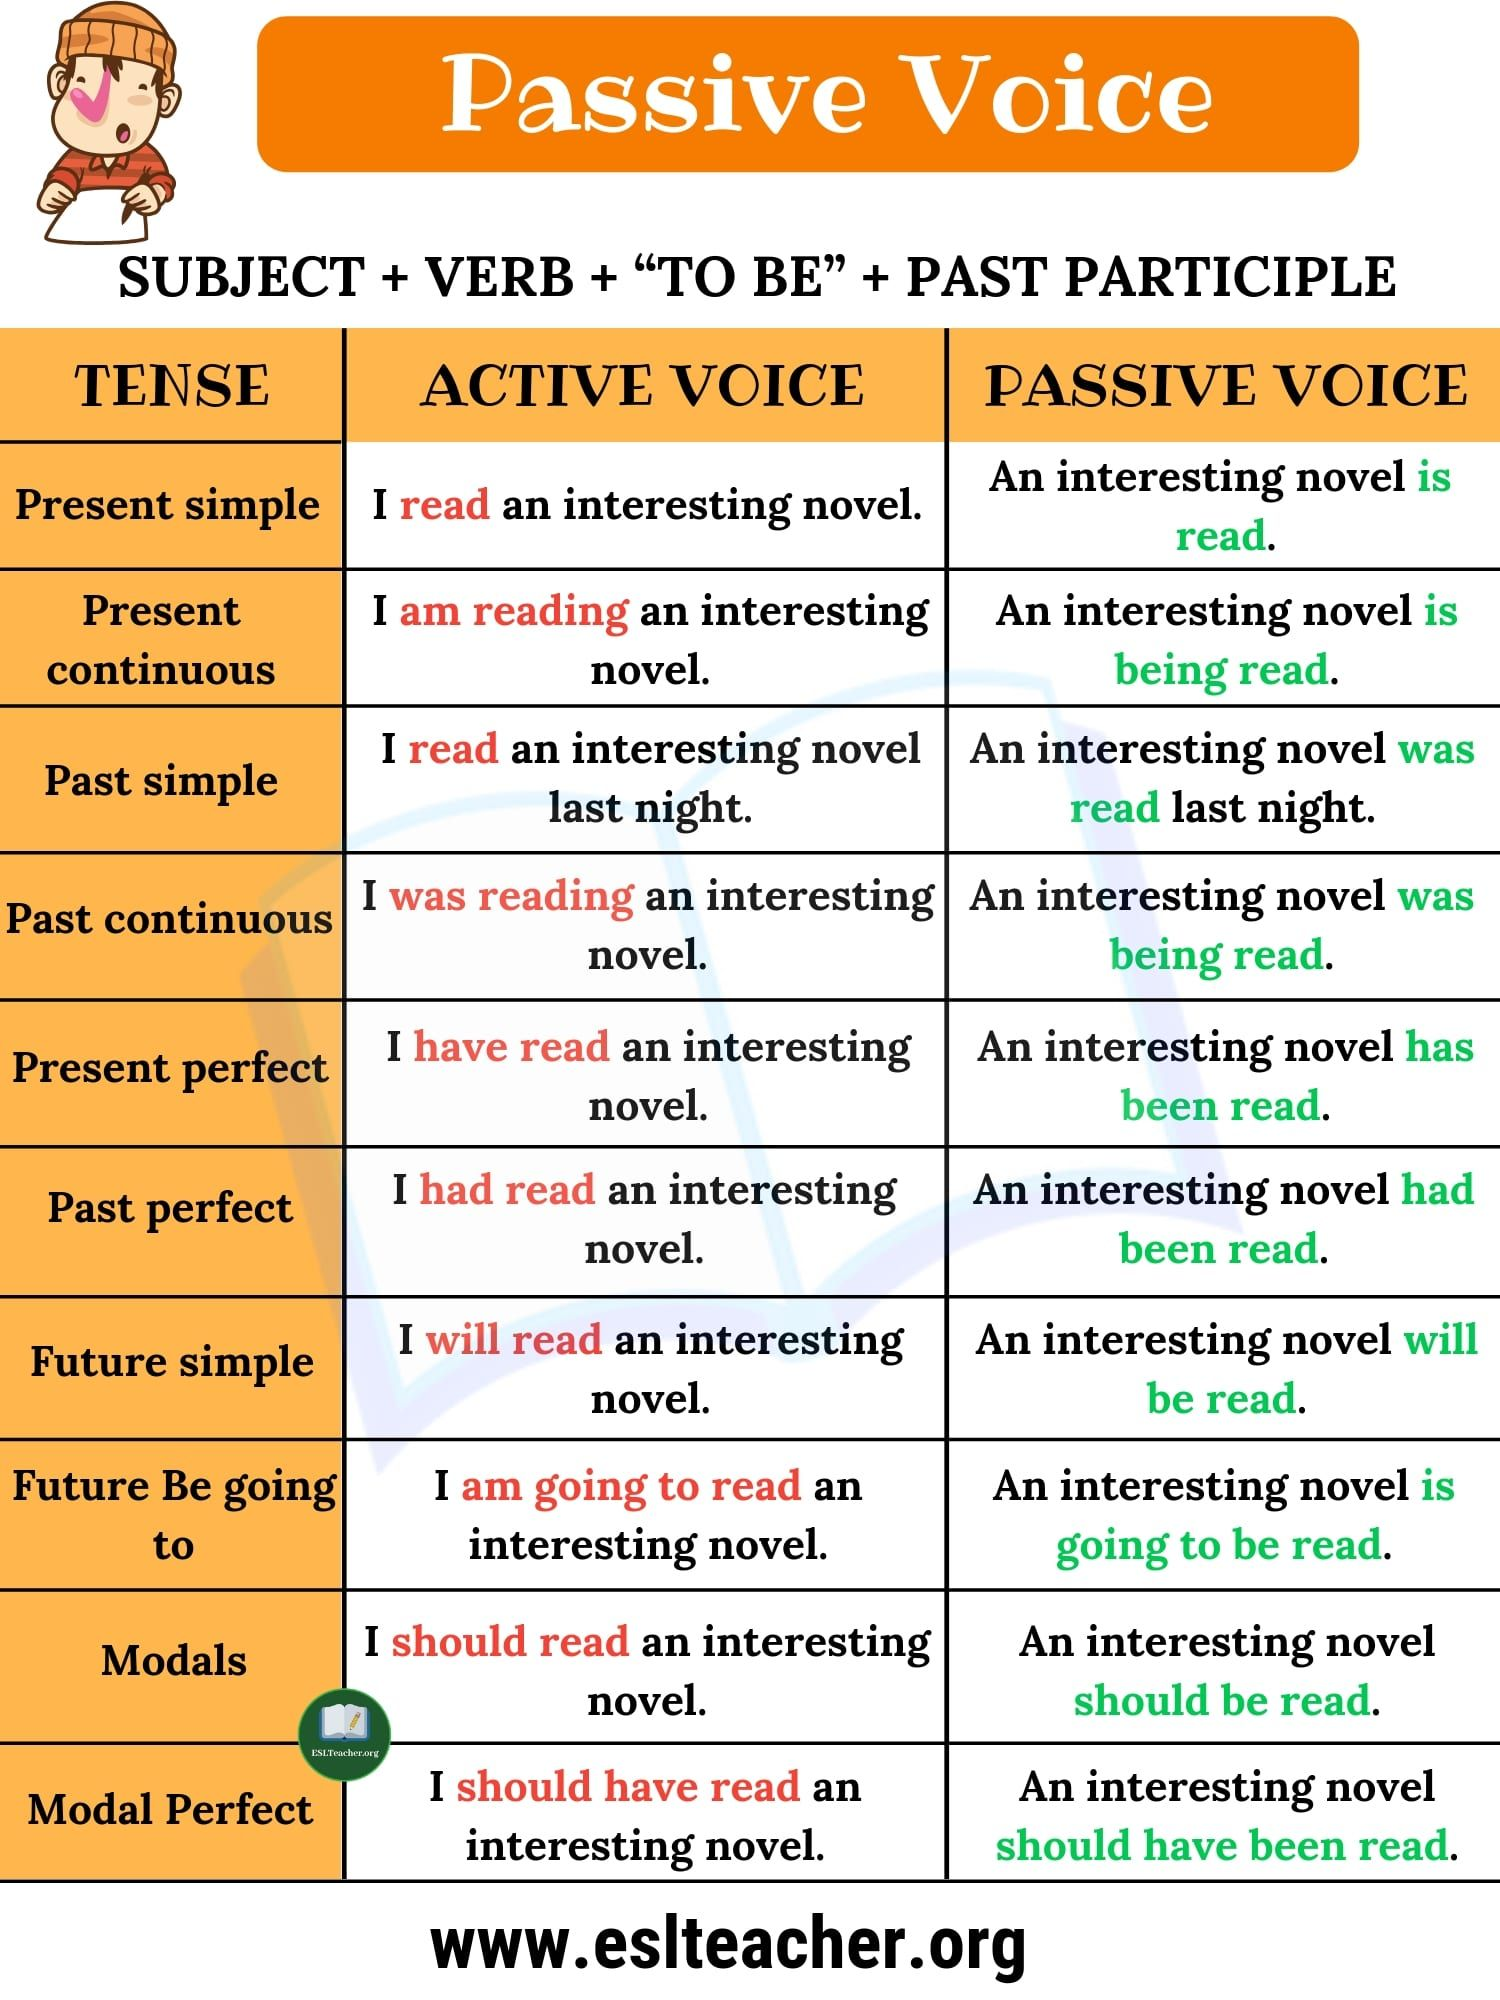 Passive Voice Definition Examples Of Active And Passive Voice